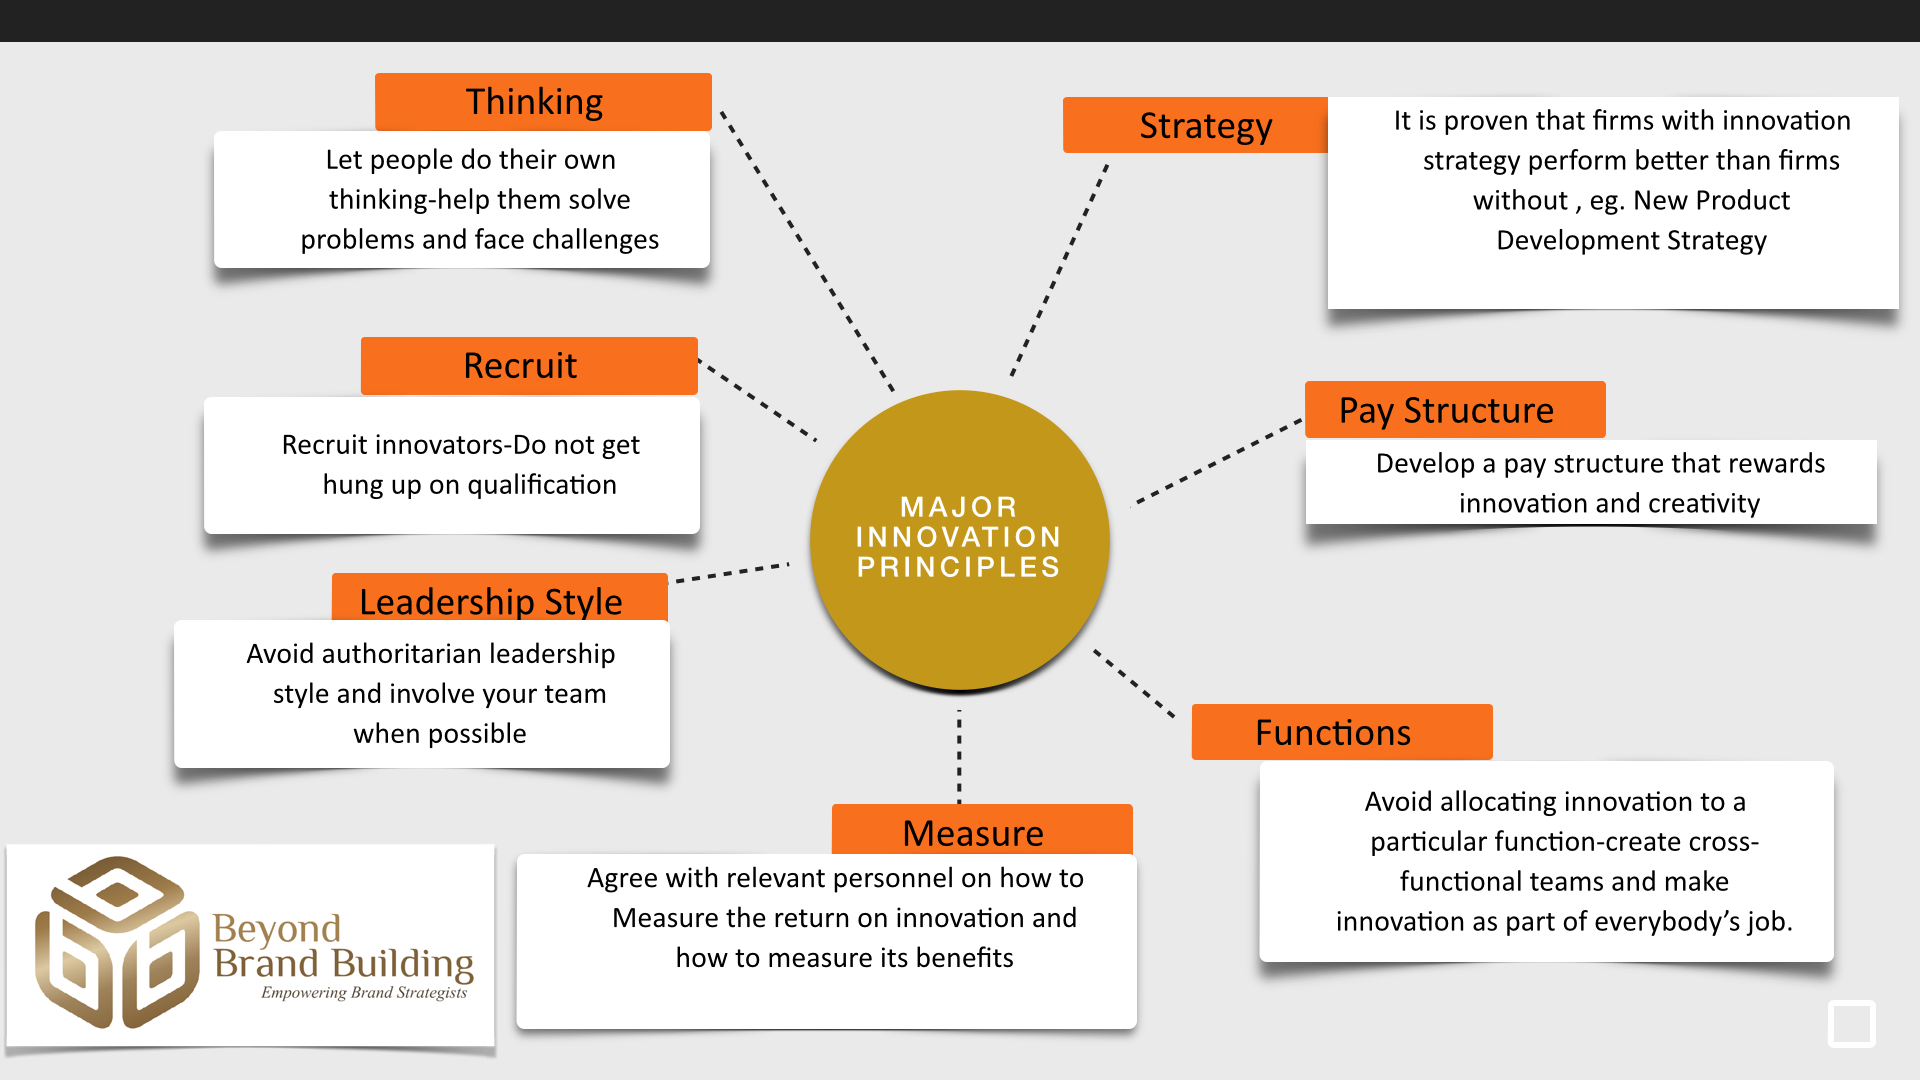 major innovation Principles